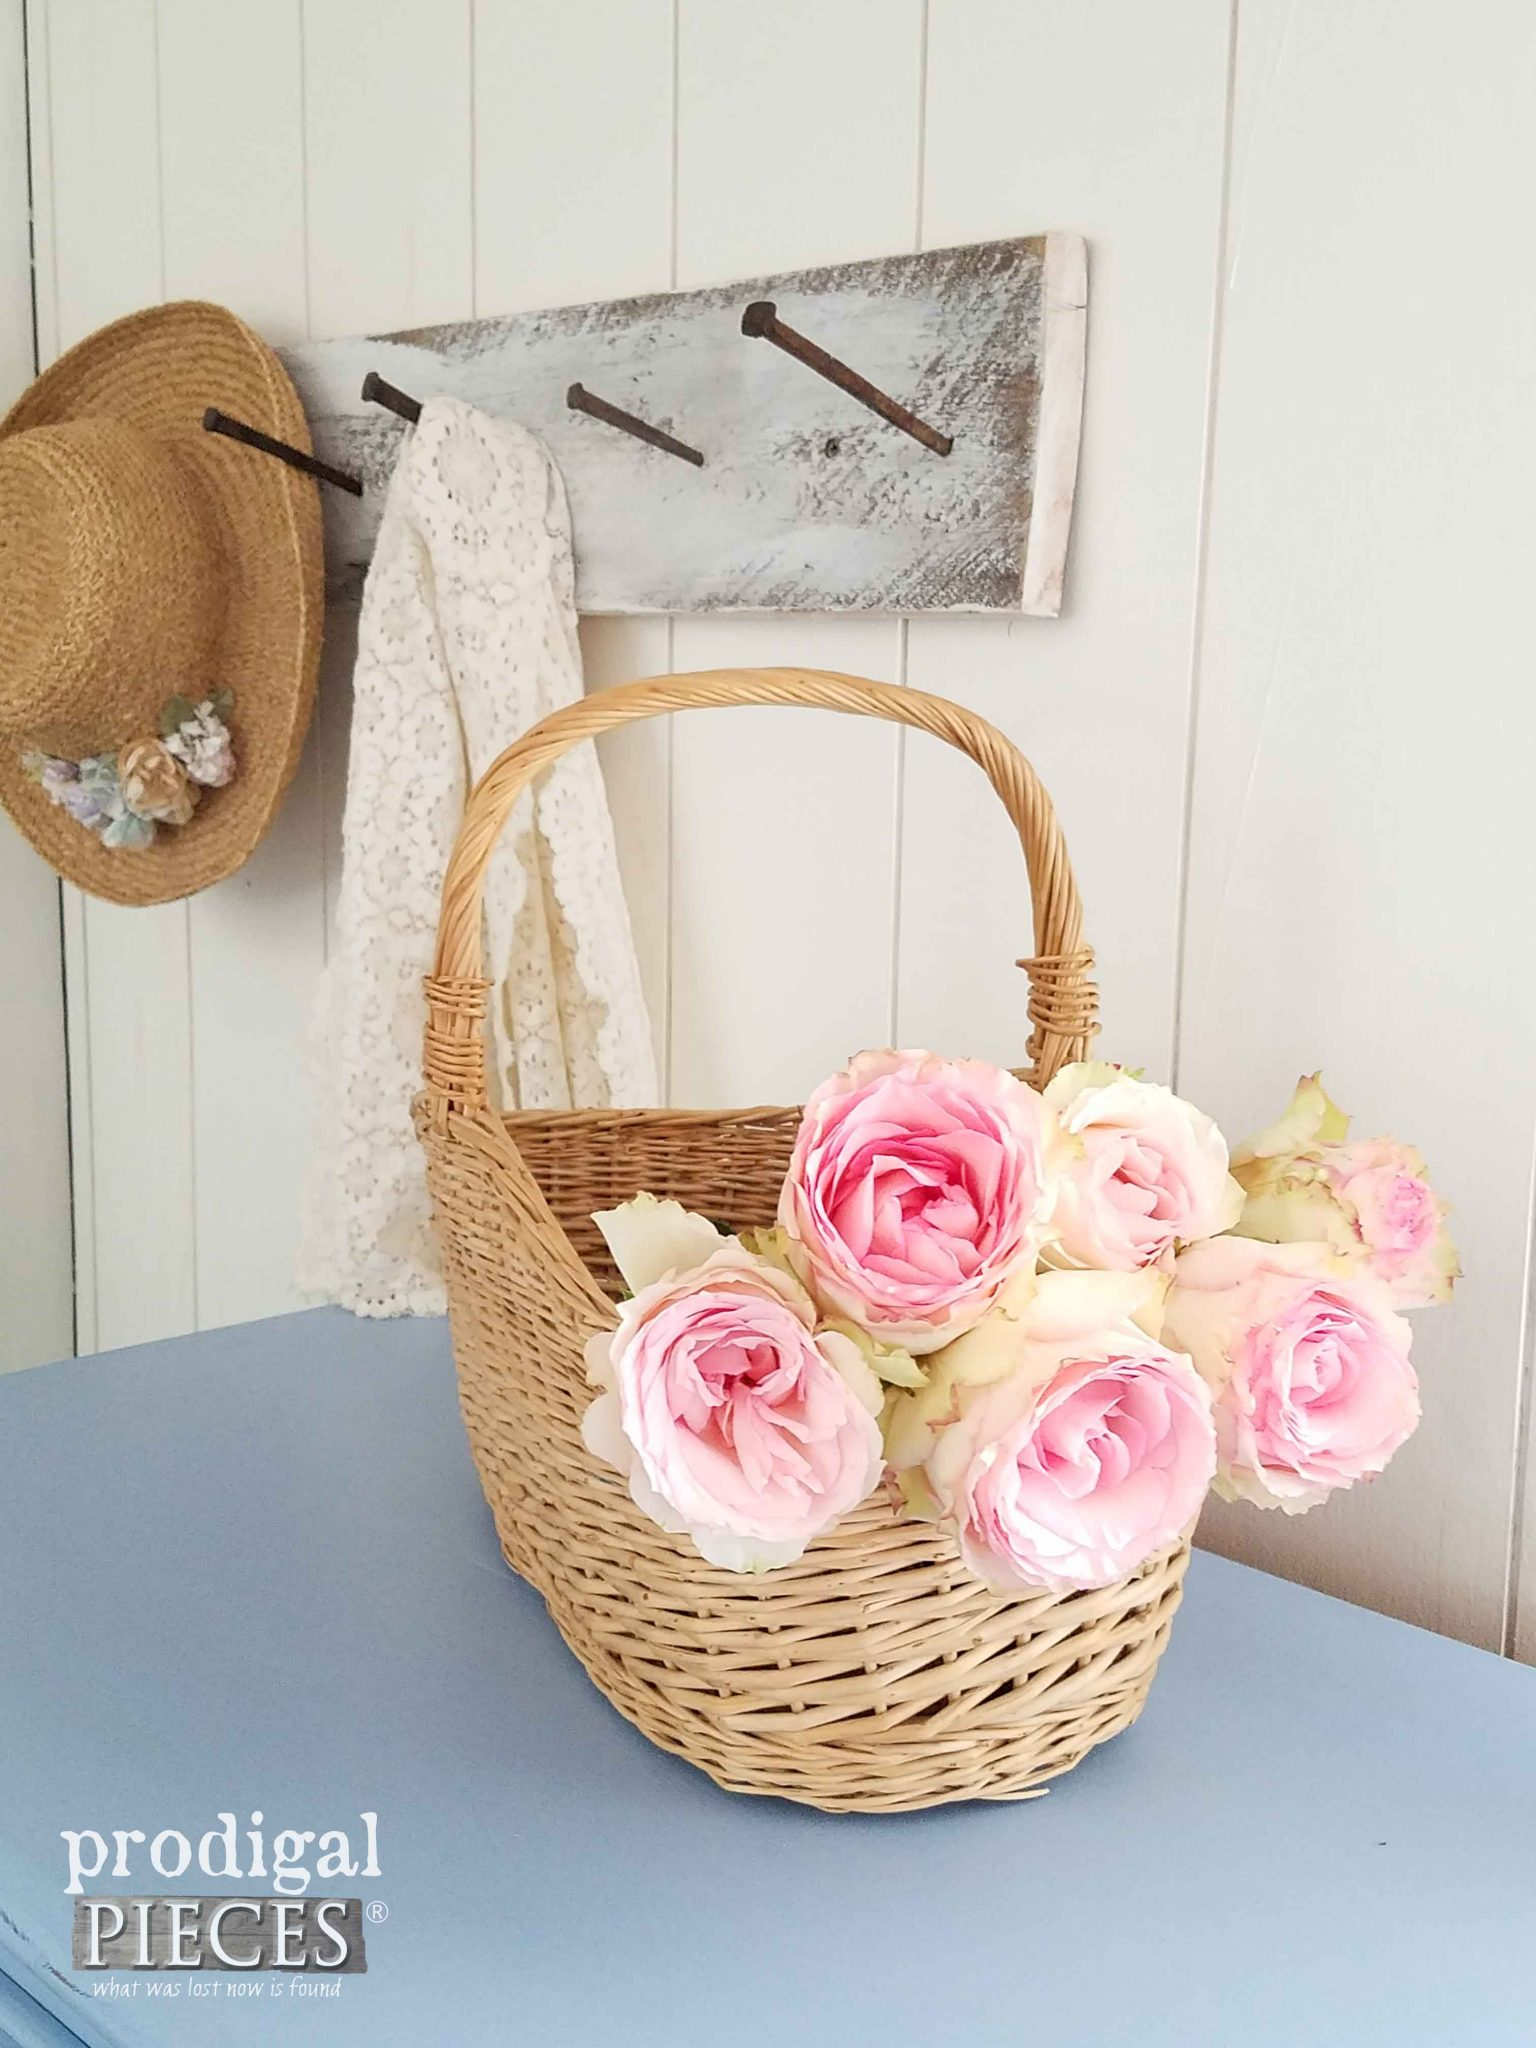 Basket of Roses in Girl's Bedroom | Prodigal Pieces | prodigalpieces.com